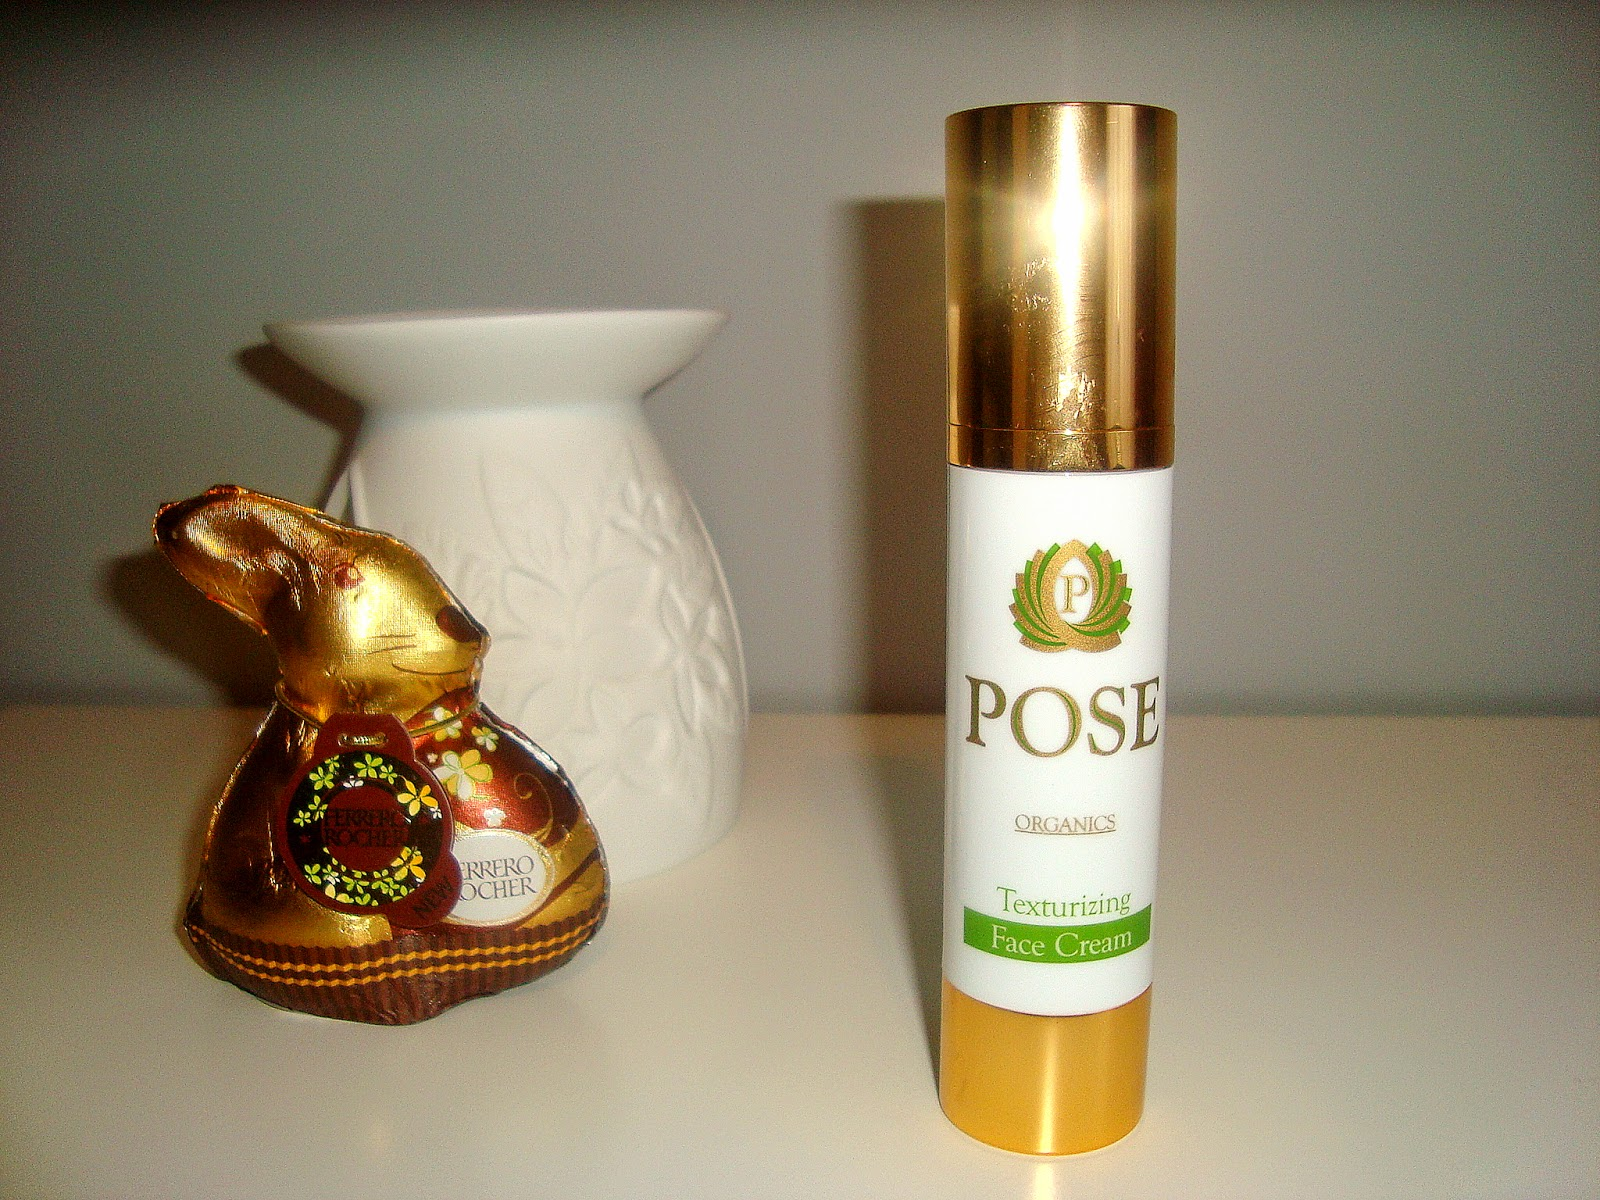 POSE Organics Texturizing Face Cream